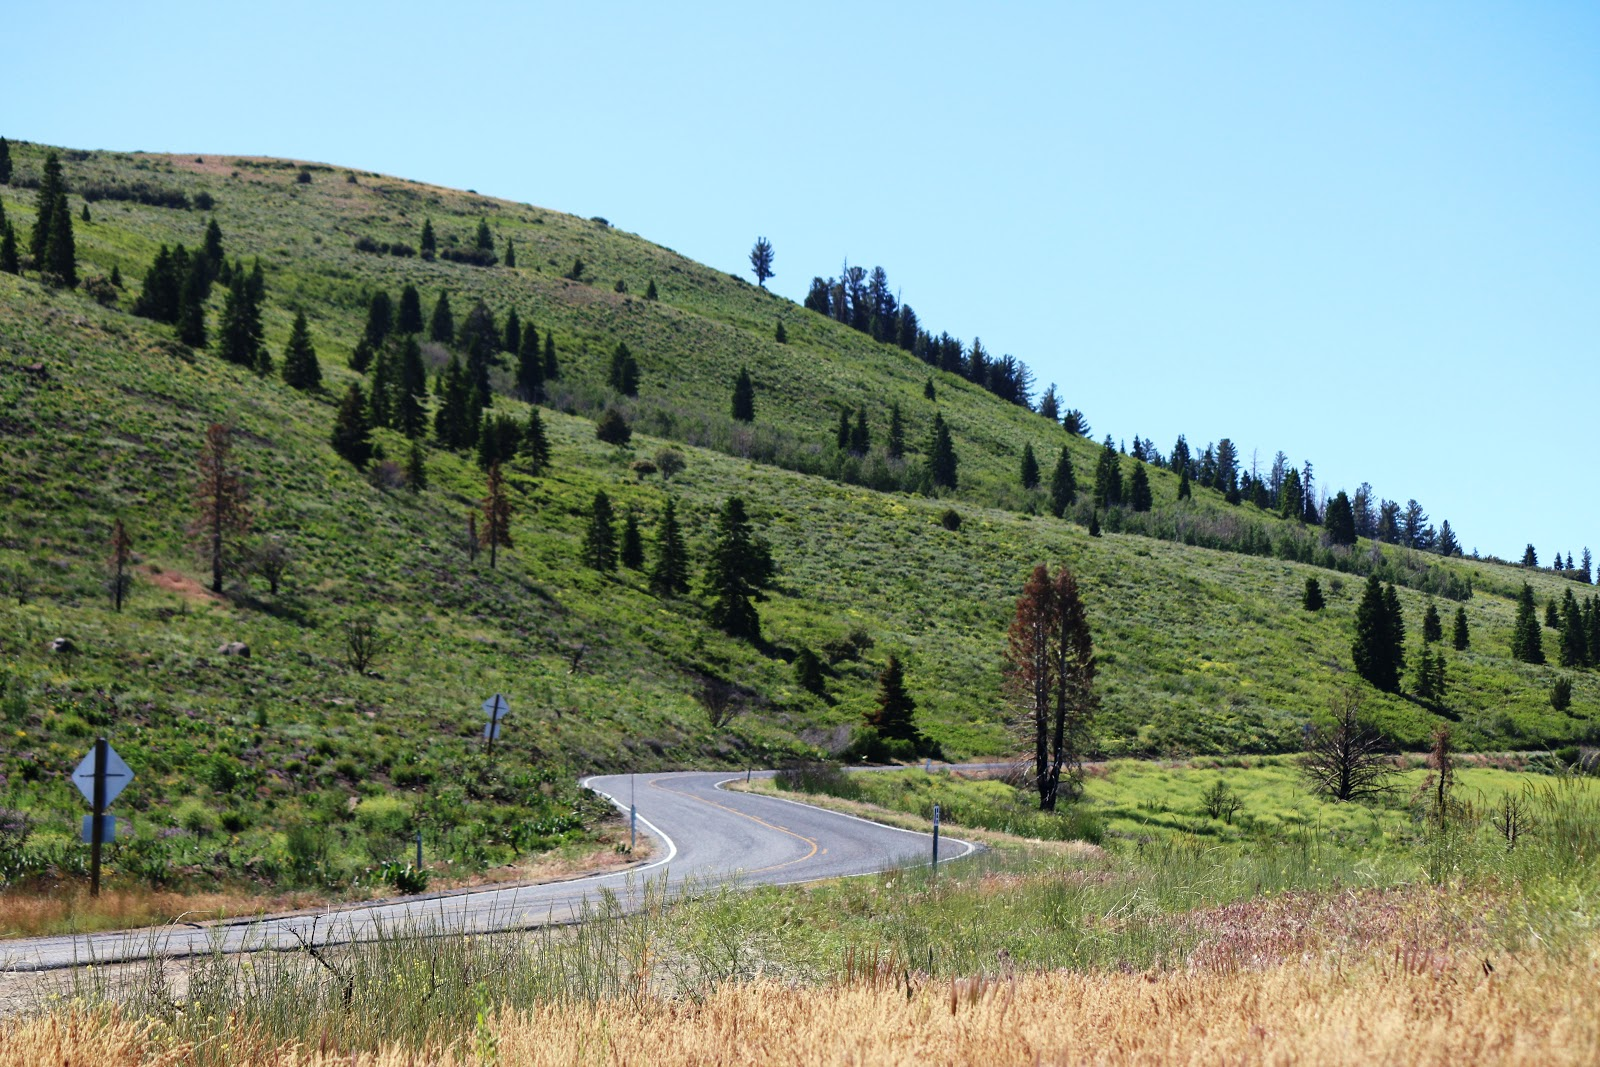 Bike ride up Monitor Pass East  - view of road and hillside